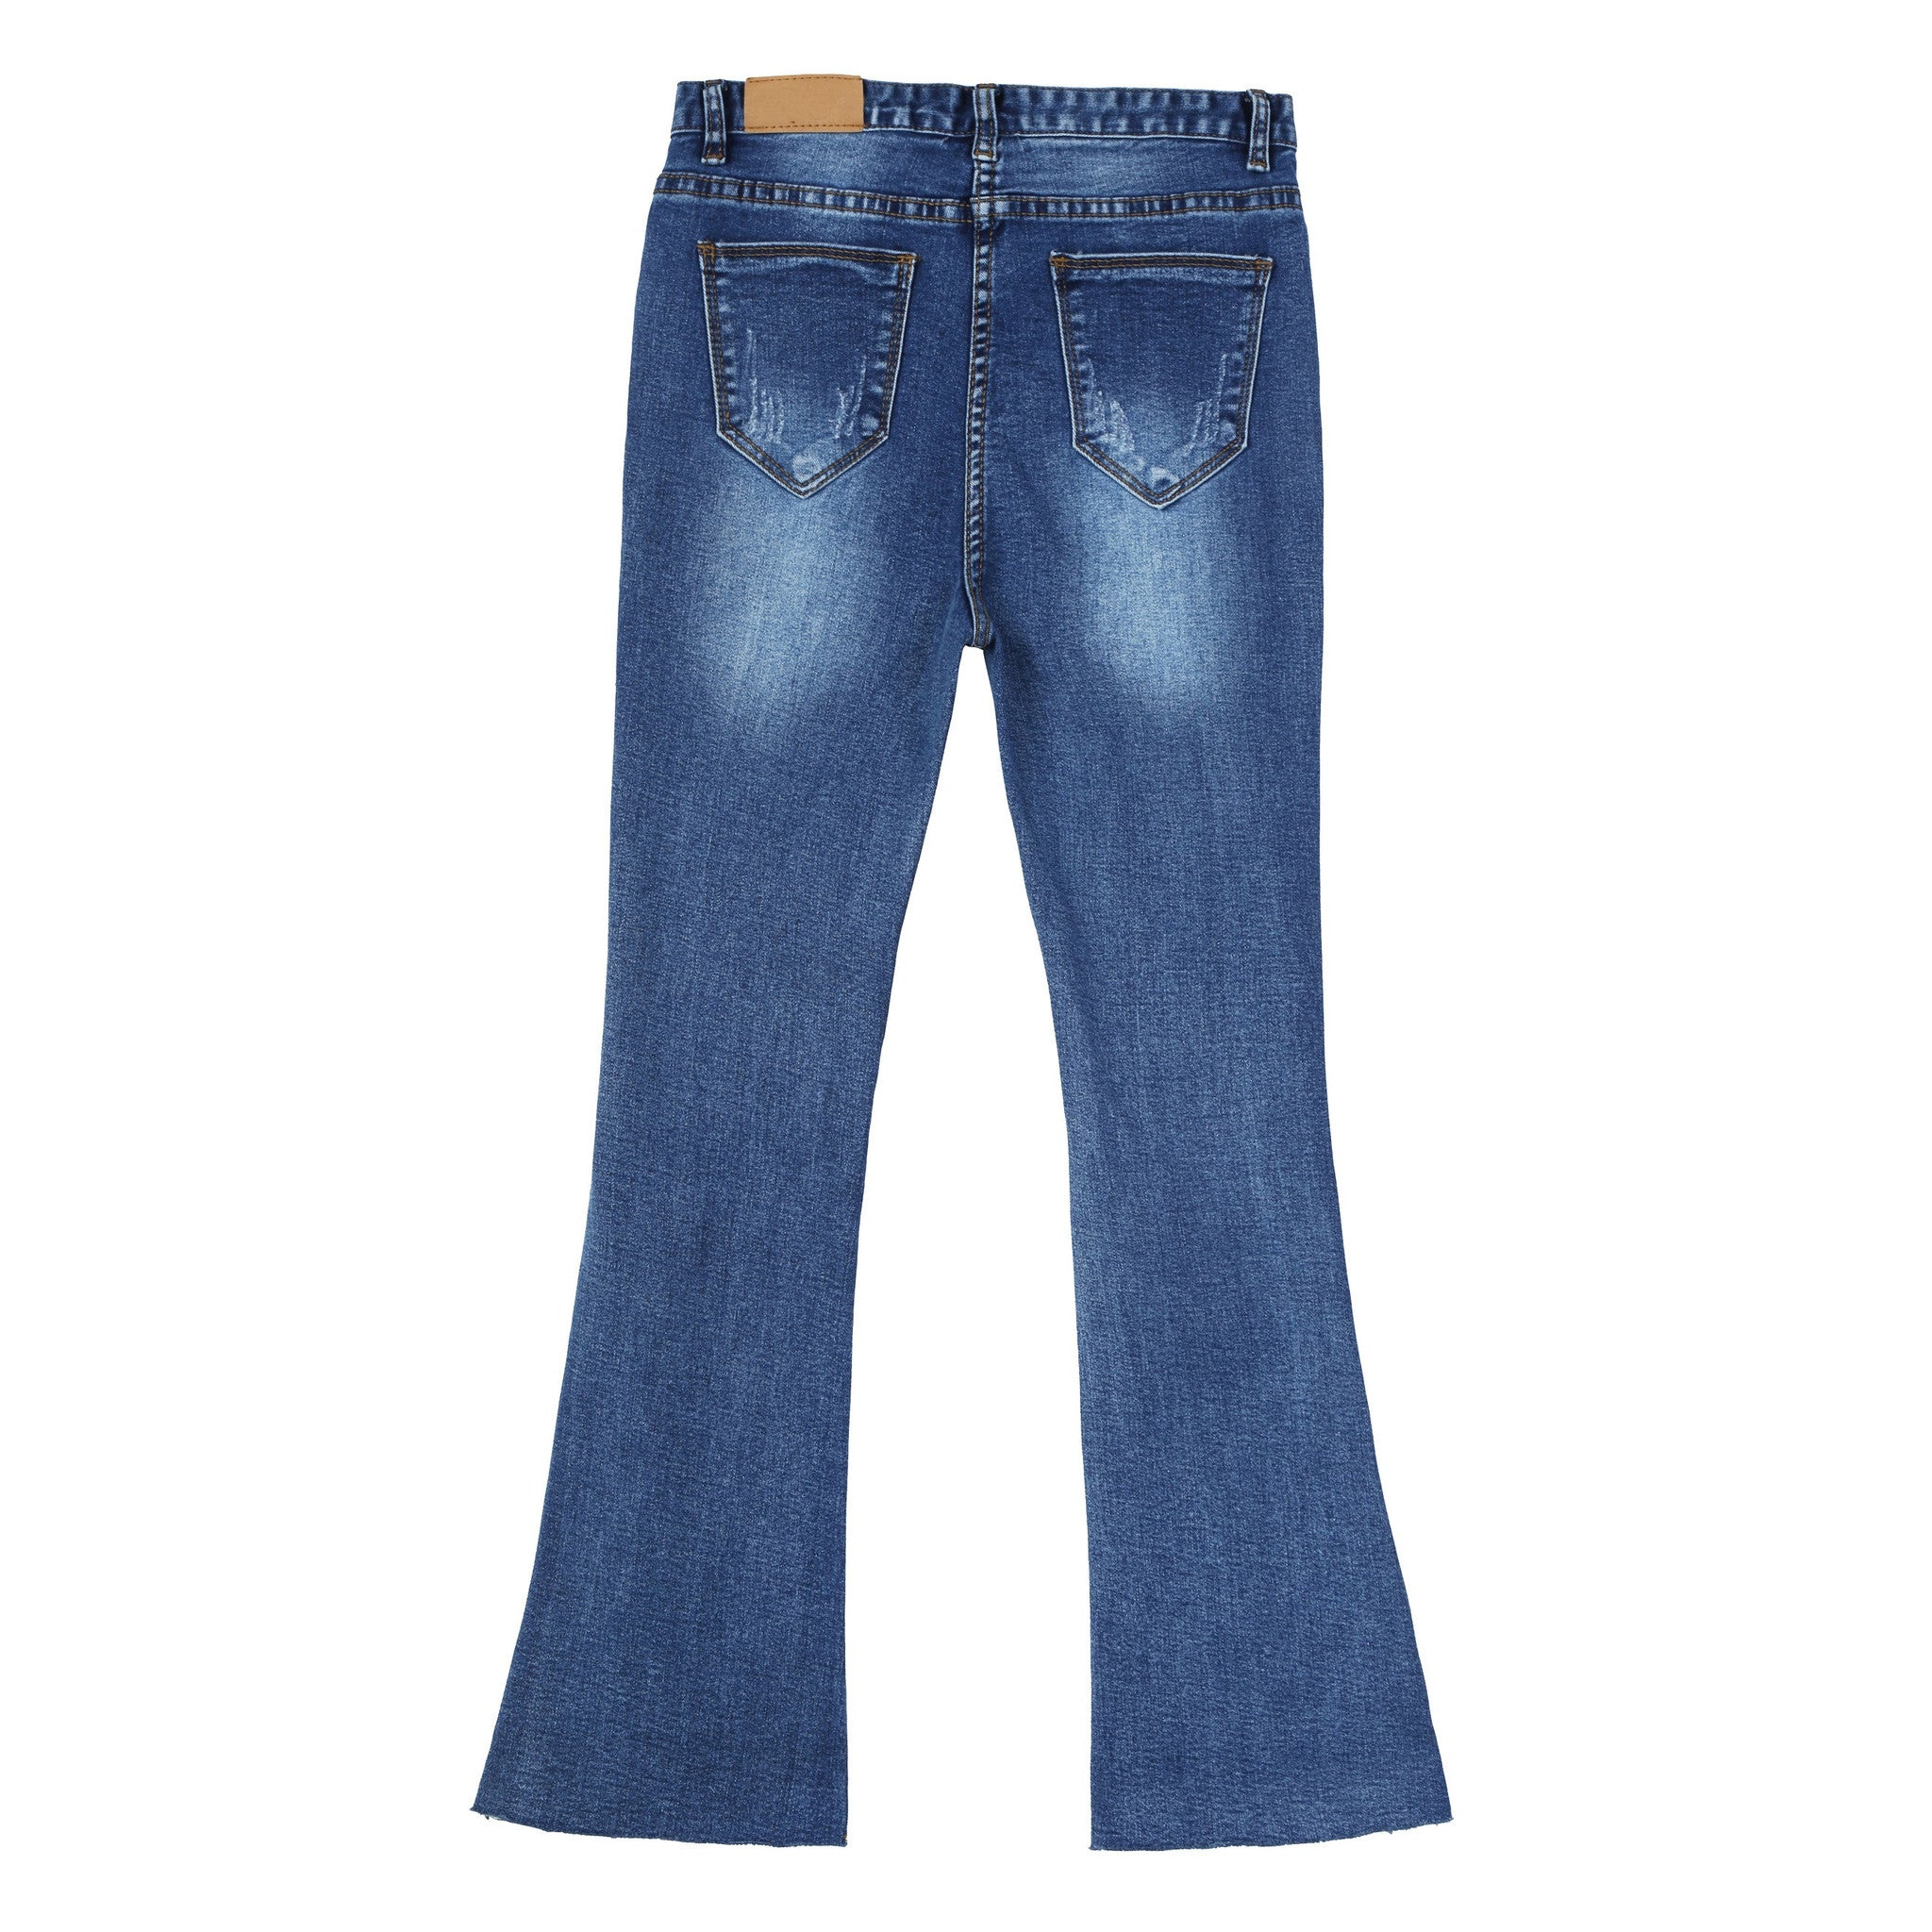 Distressed Ankle Flare Jeans - Indigo